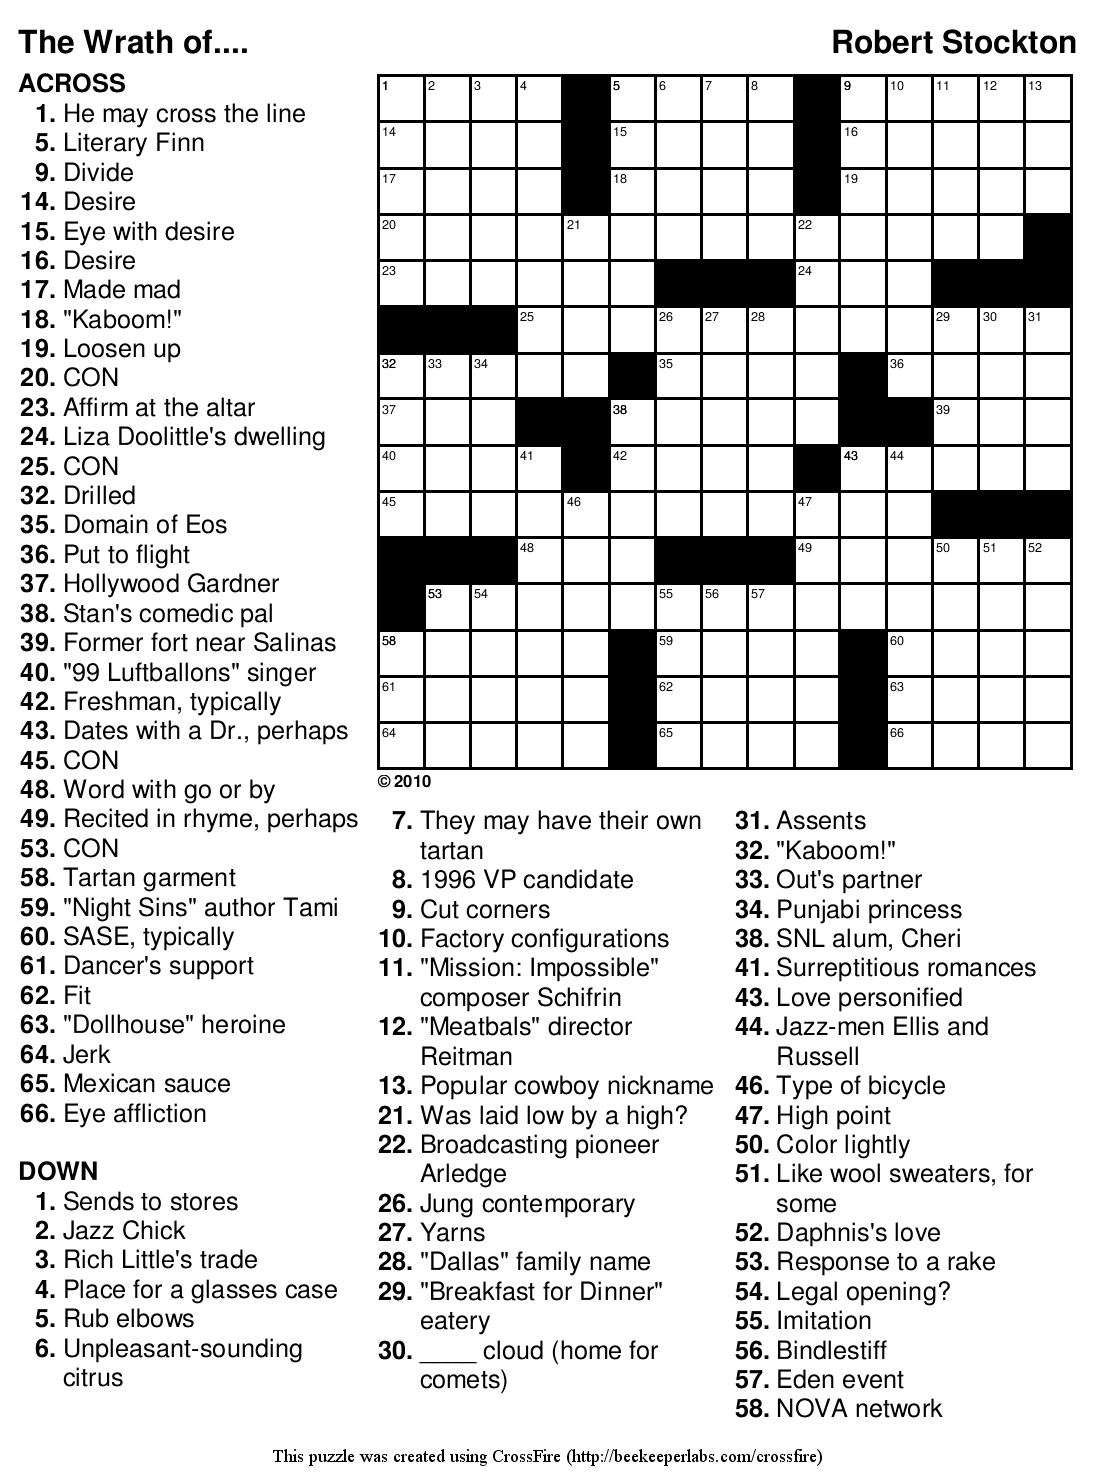 Free Printable Large Print Crossword Puzzles | M3U8 - Printable Giant Crossword Puzzles